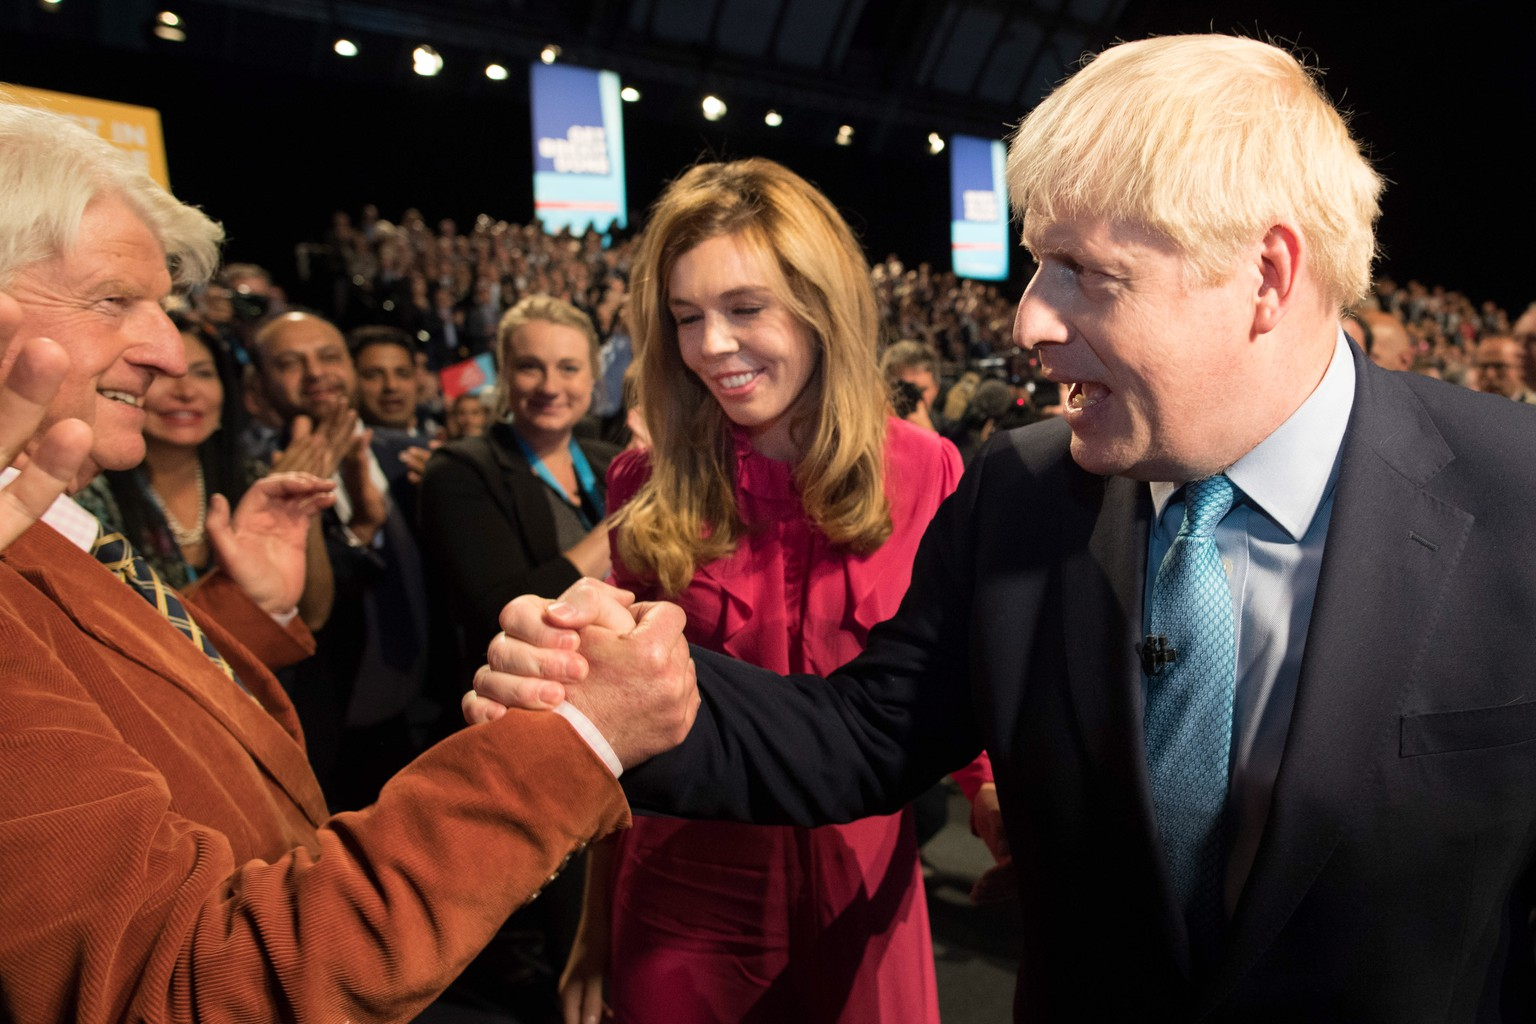 epa07889366 Prime Minister Boris Johnson leaves the stage with his partner Carrie Symonds as he is congratulated by his father Stanley Johnson after delivering his speech during the Conservative Party Conference at the Manchester Convention Centre, Britain, 02 October 2019.  EPA/STEFAN ROUSSEAU / POOL